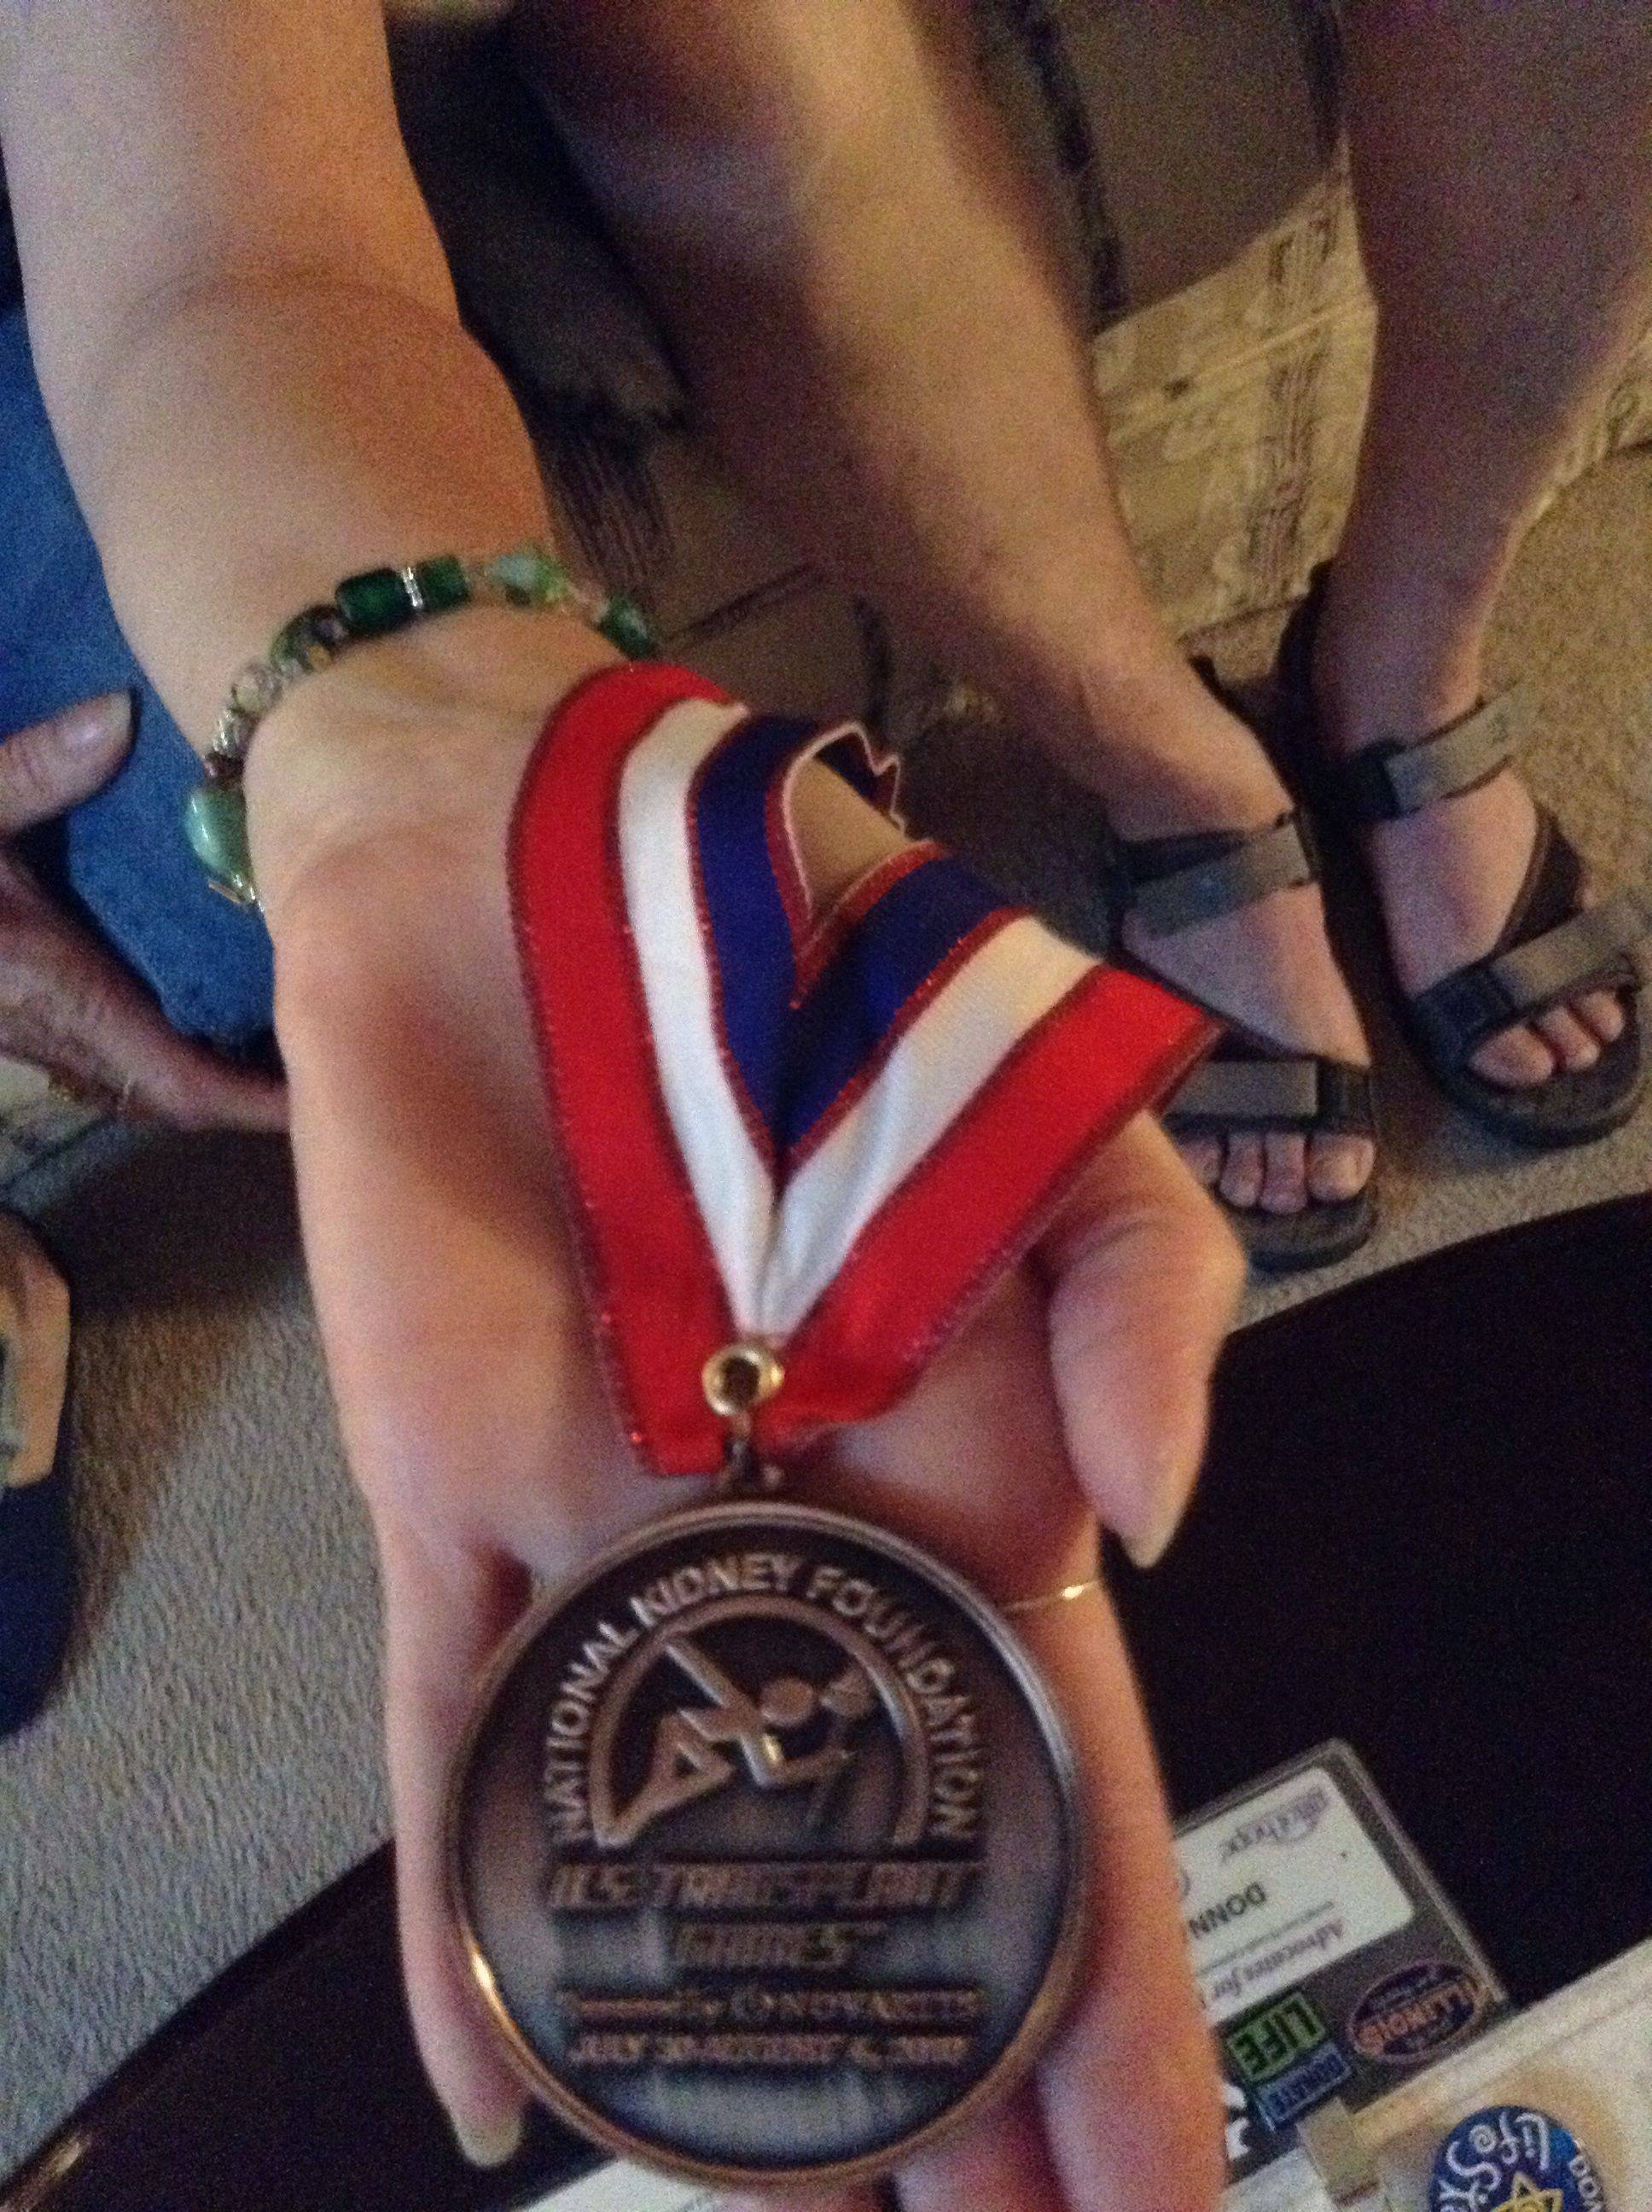 Having finished just 0.4 seconds off the medal stand in a previous Transplant Games of America, Donna Stout was given this bronze medal by the woman who beat her out for third place. A heart-transplant recipient, Stout says she'll give the medal to her donor's family if they want to meet her.